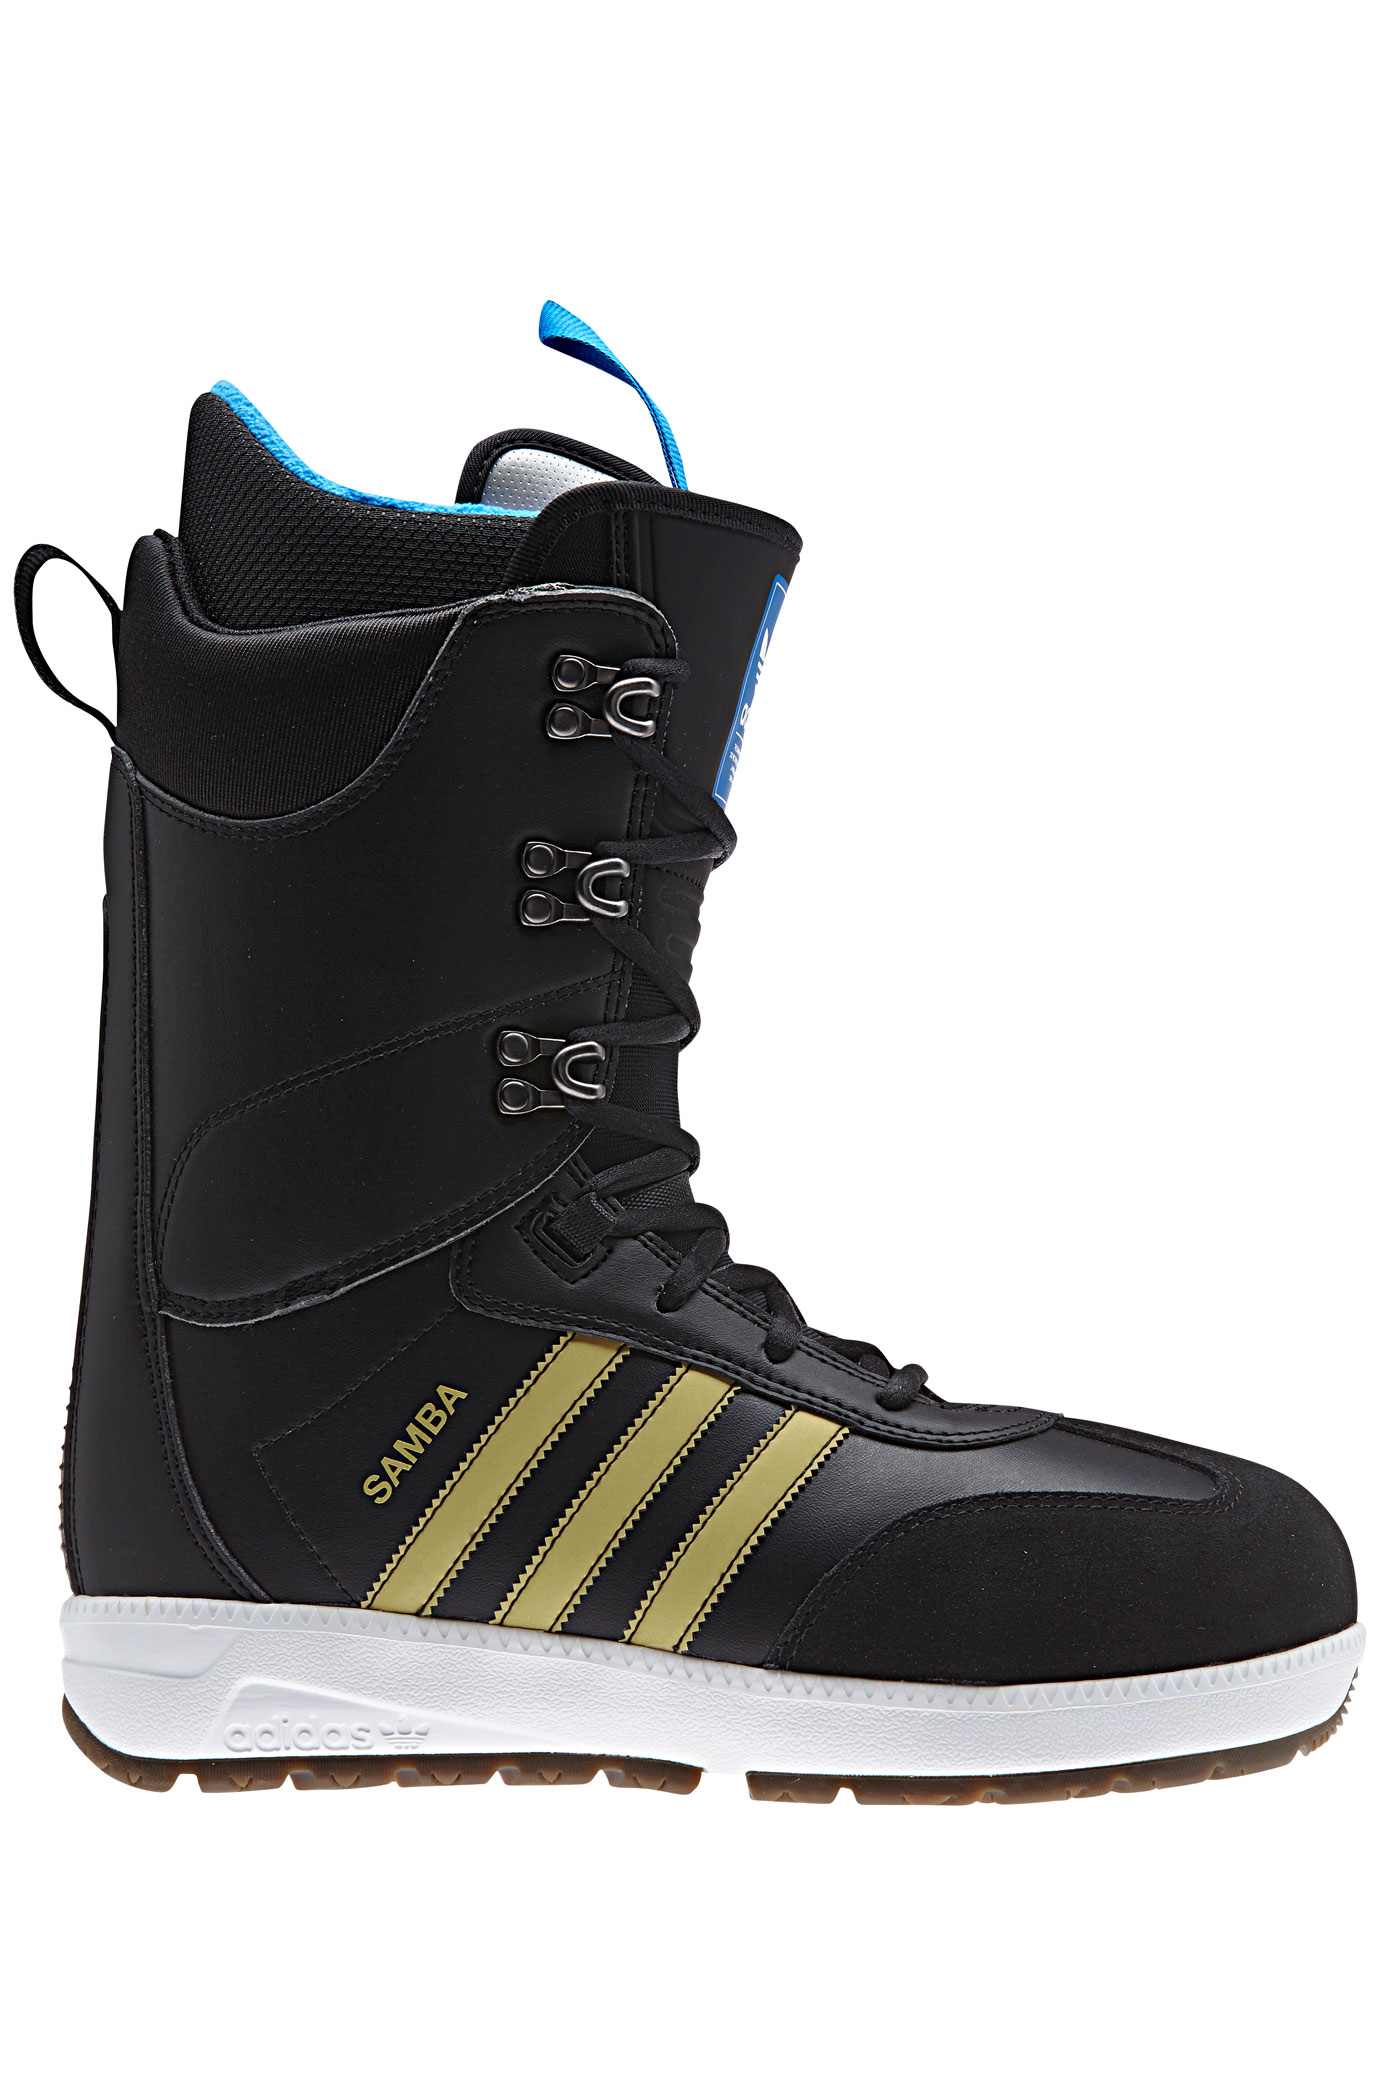 adidas samba adv boots 2017 18 core black buy at skatedeluxe. Black Bedroom Furniture Sets. Home Design Ideas